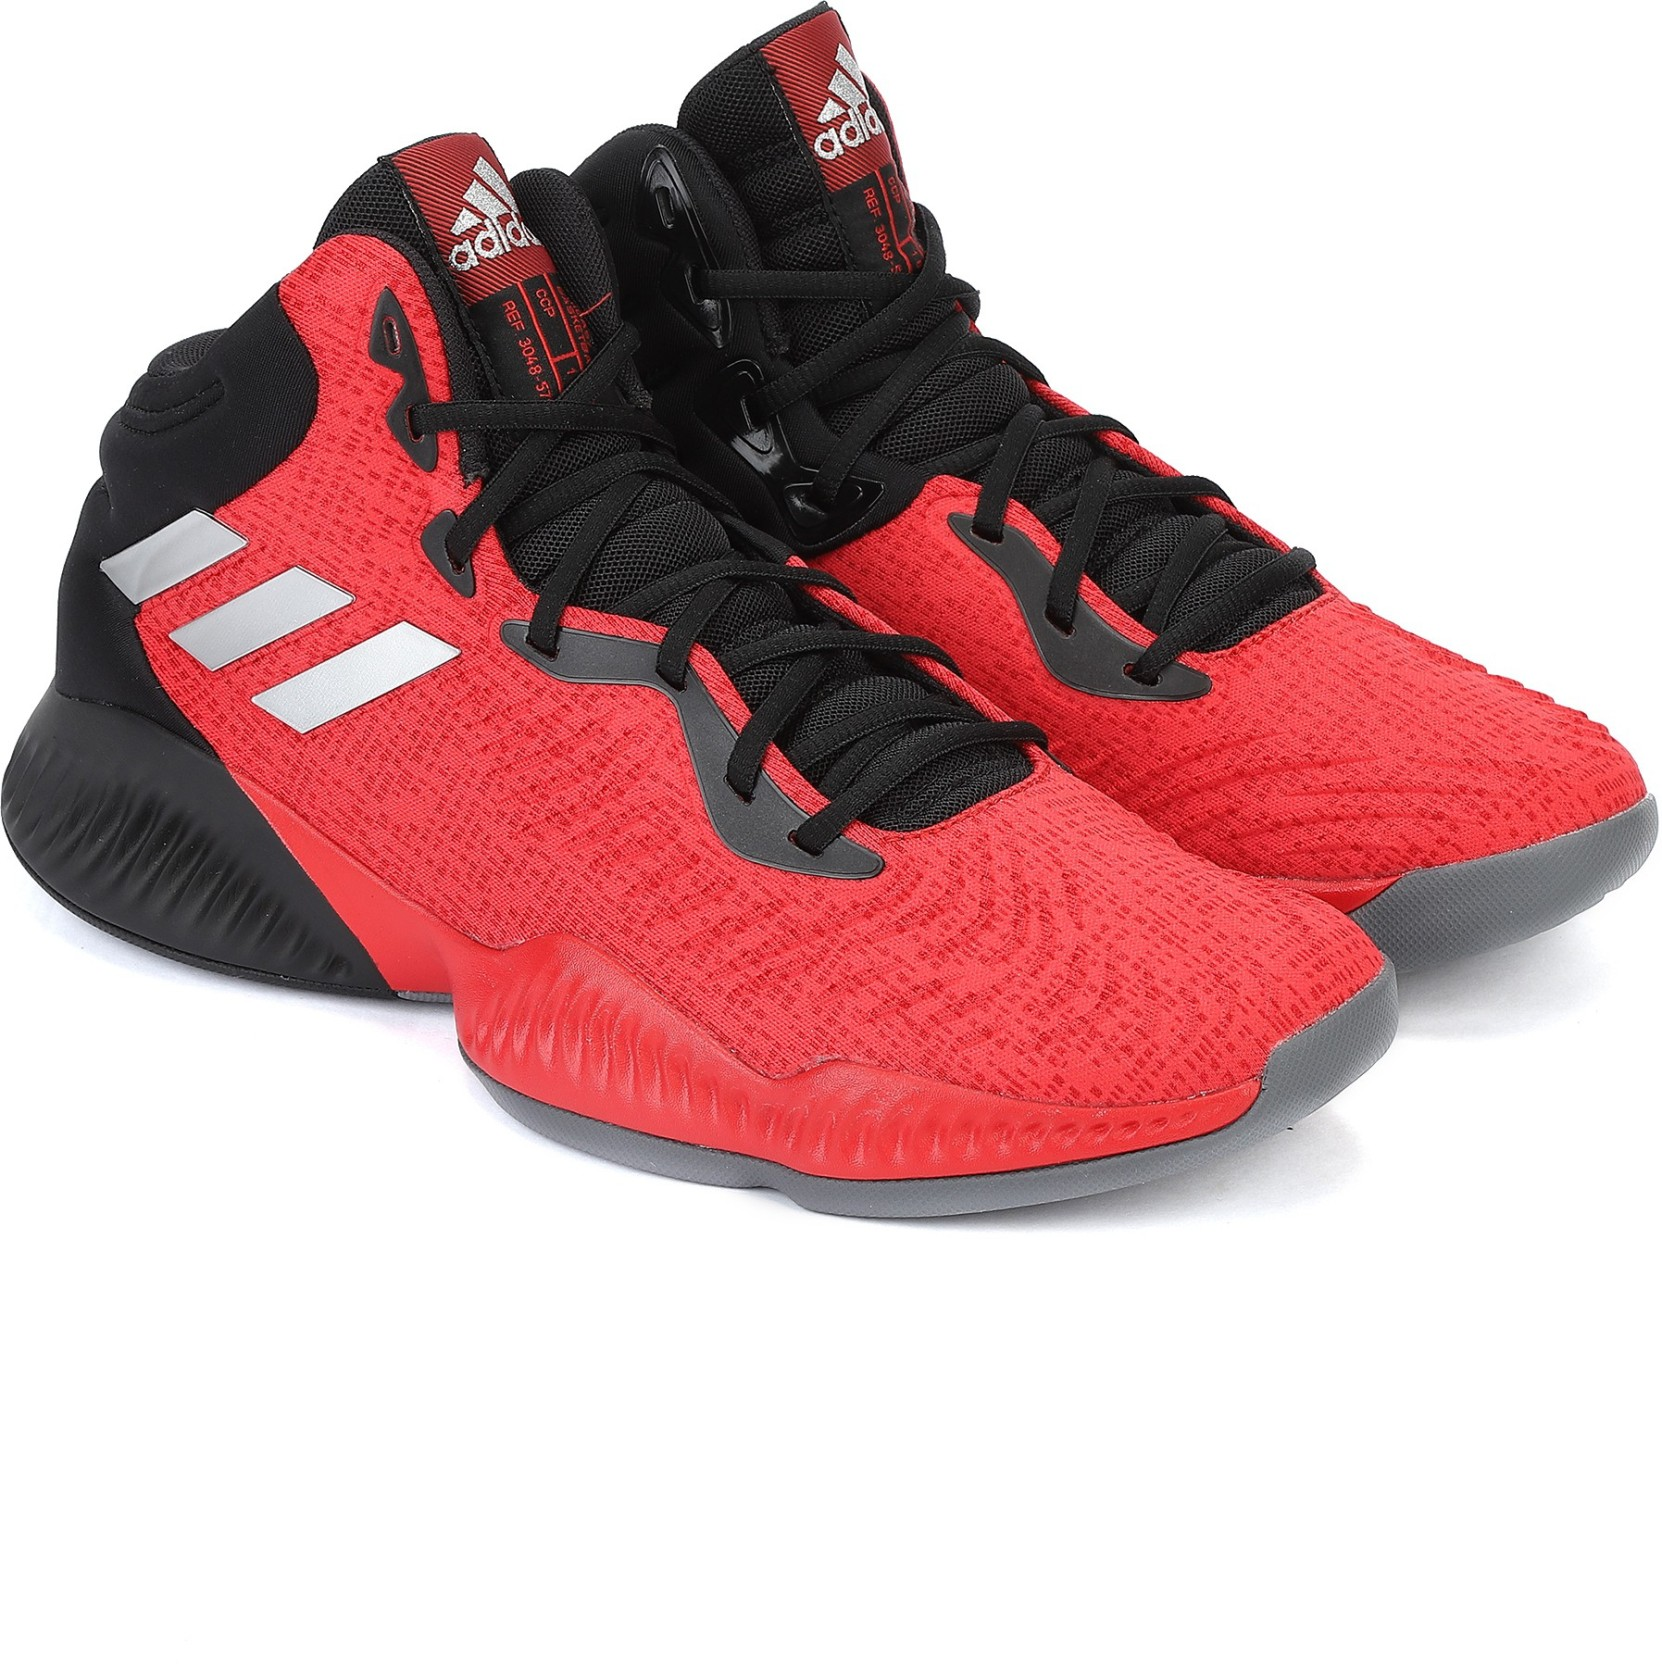 67aa60c5fe53d Adidas Bounce Basketball Shoes Review - Style Guru  Fashion